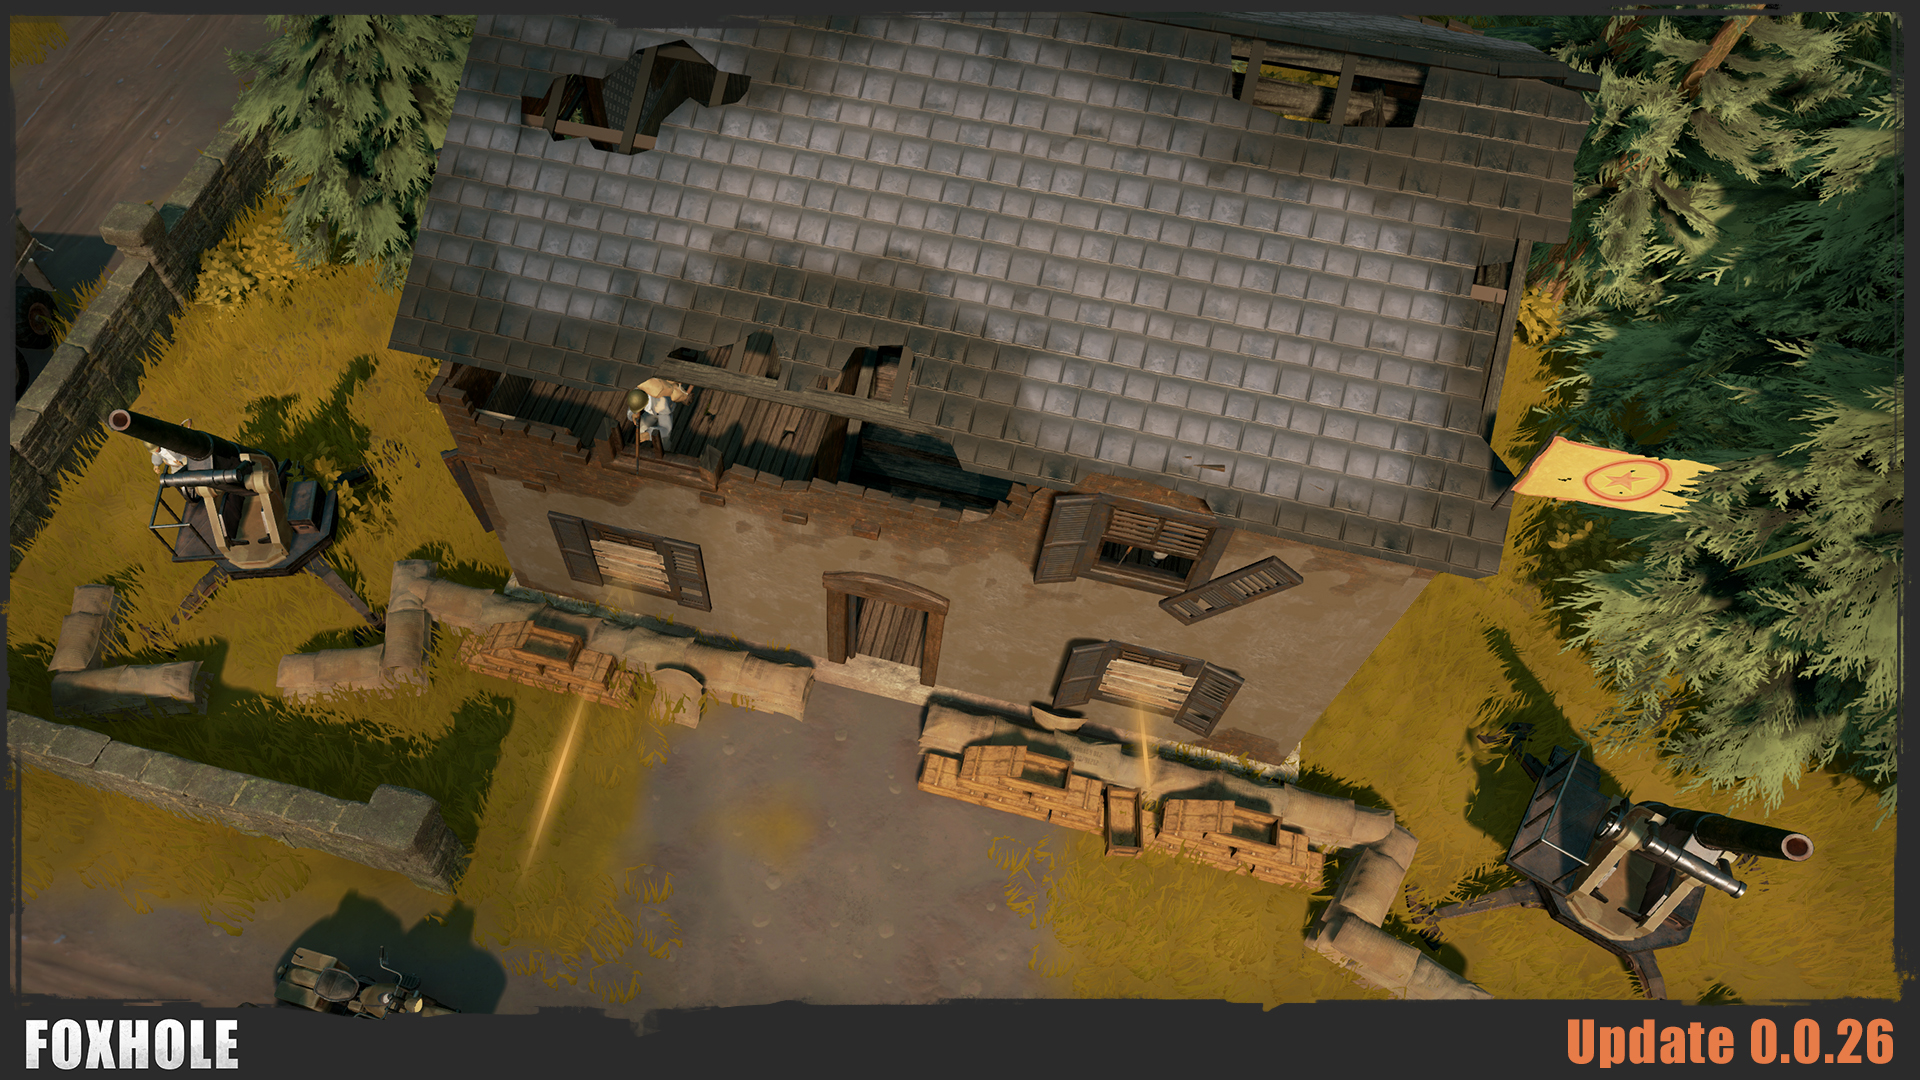 foxhole 0 0 26 release notes foxhole persistent war mmo